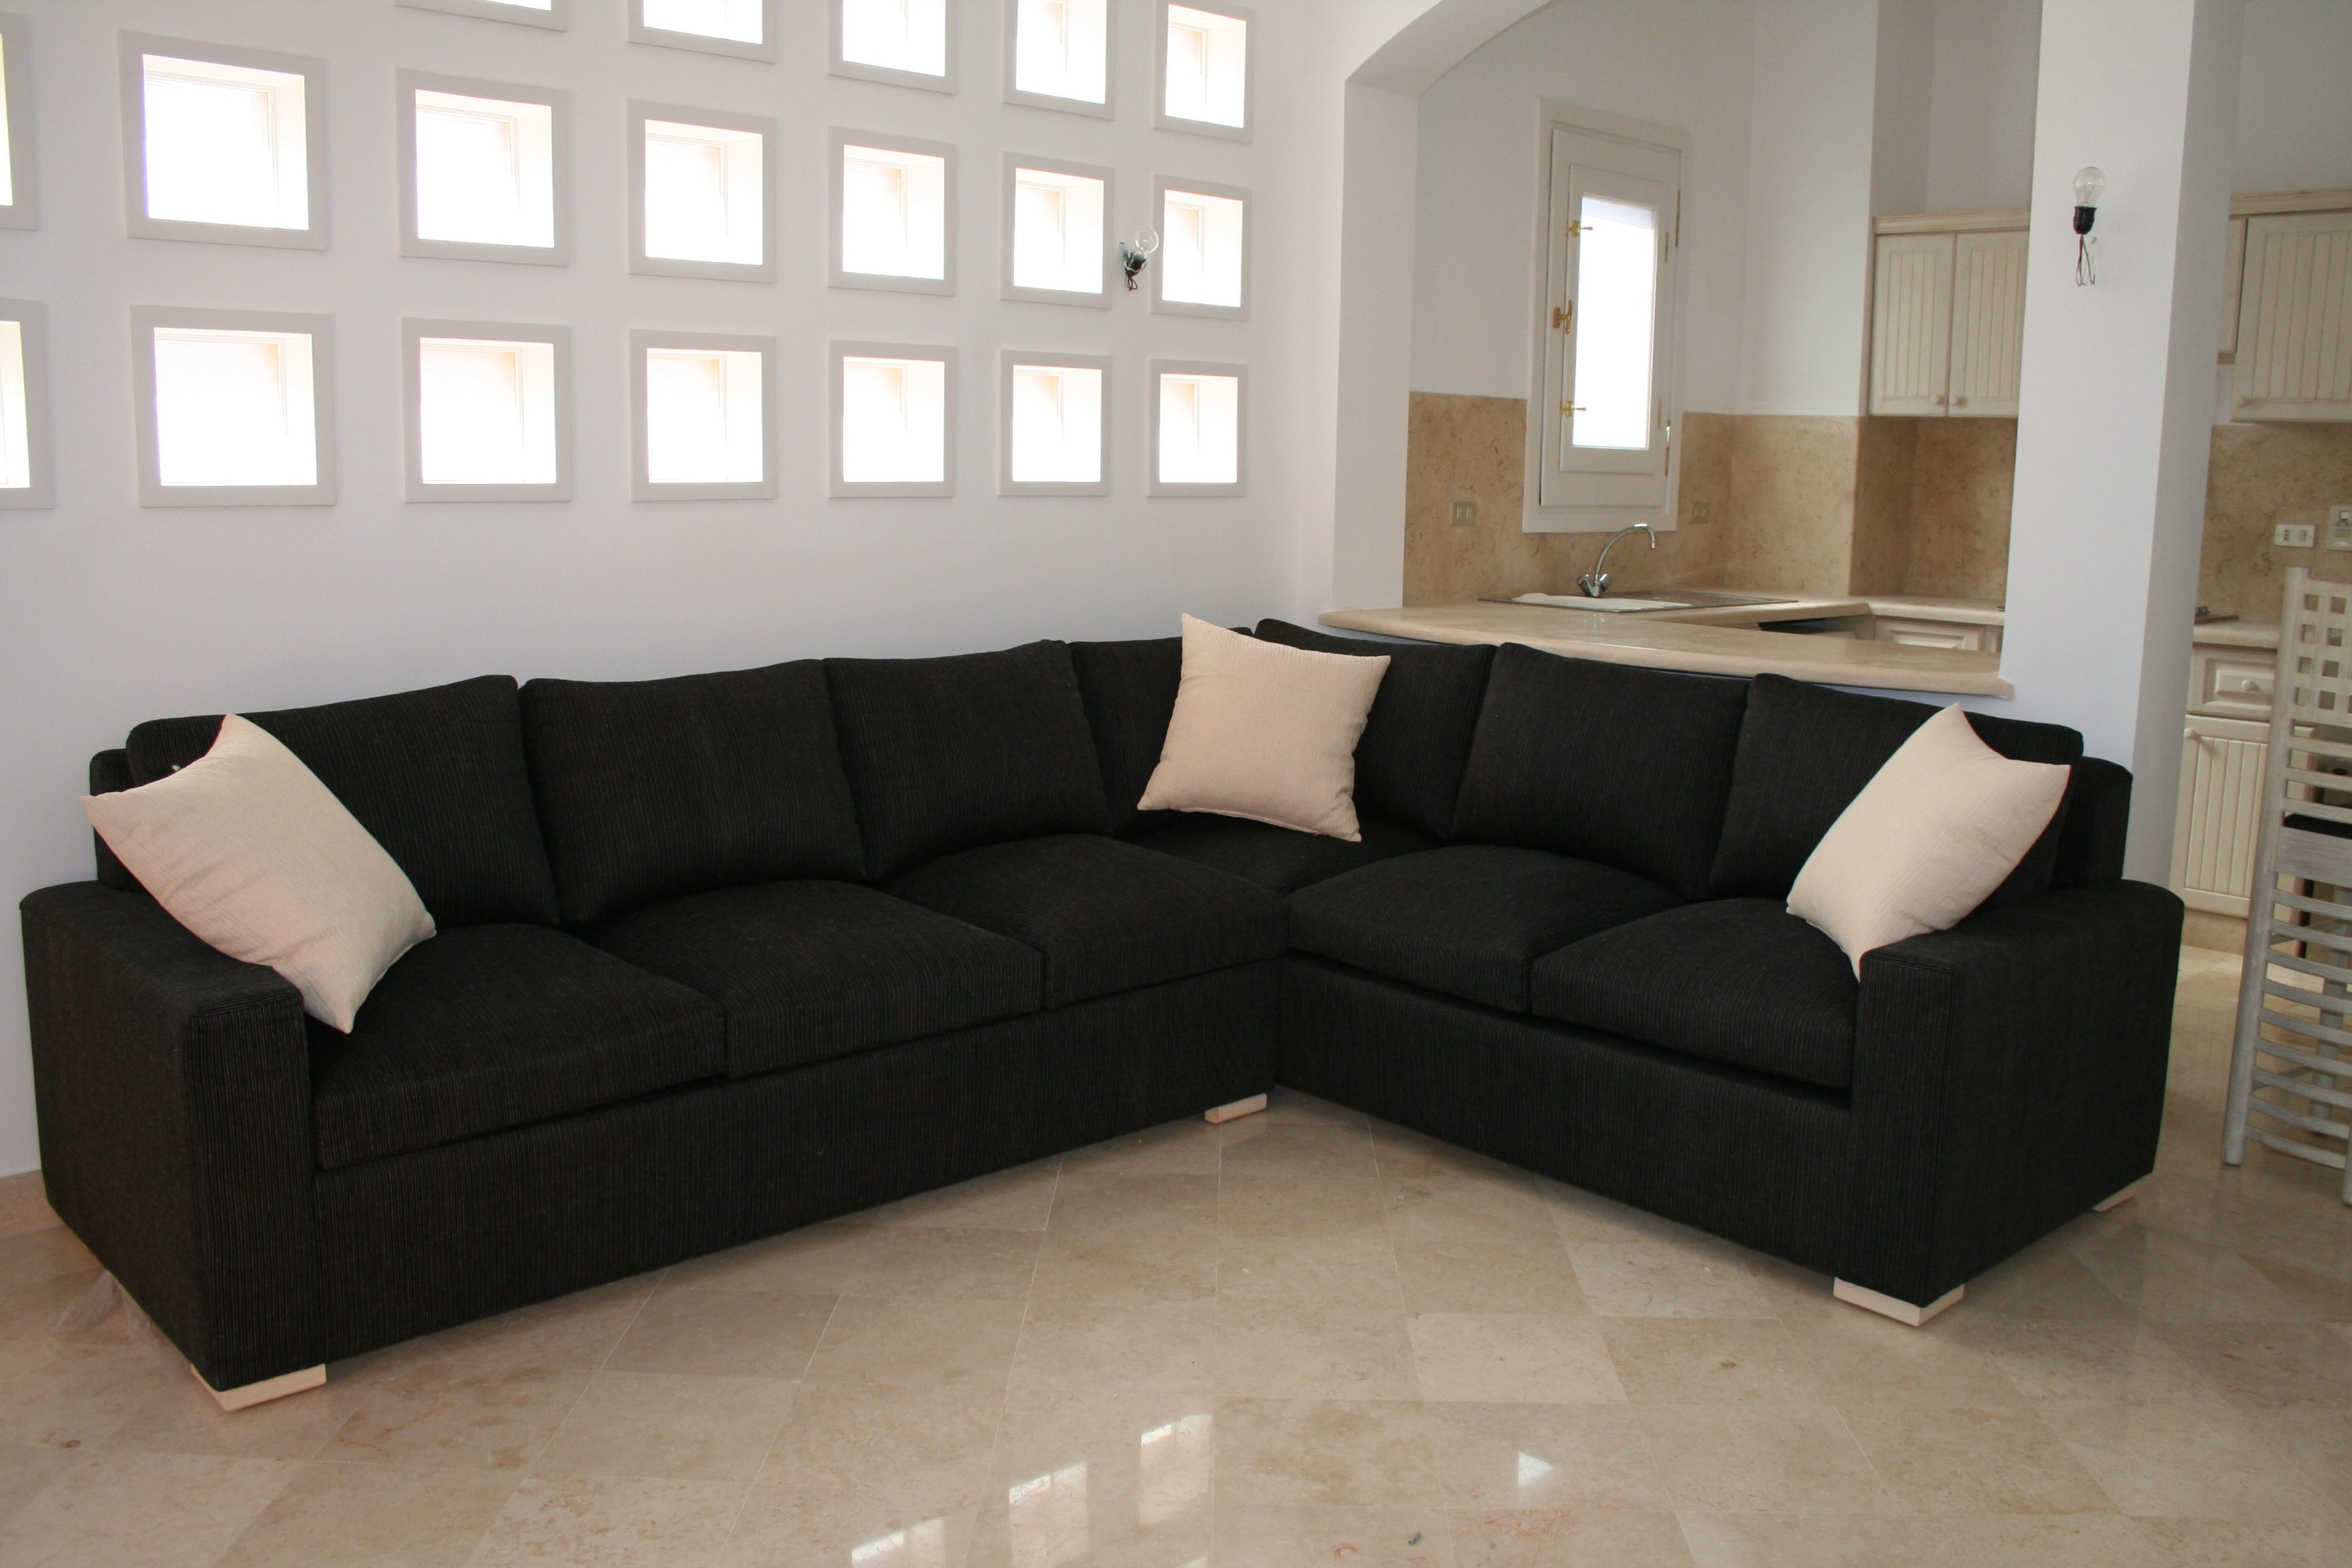 e for the weekend Do you have a favourite kind of sofa AskUK